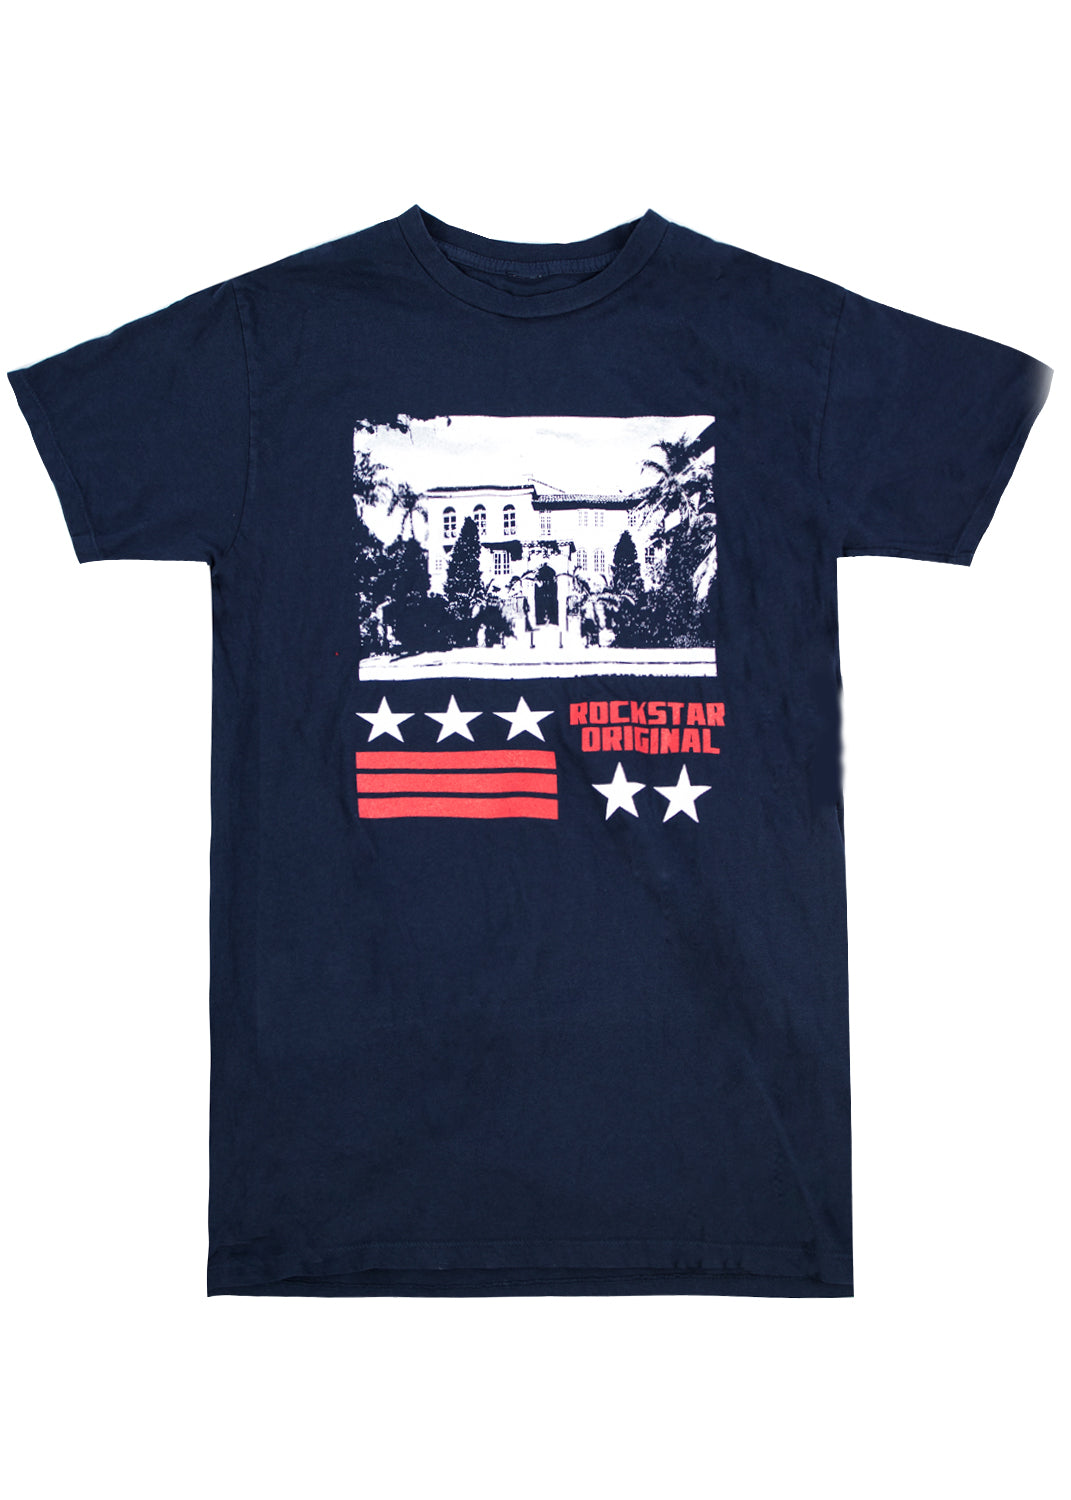 Party T Shirt (Navy)